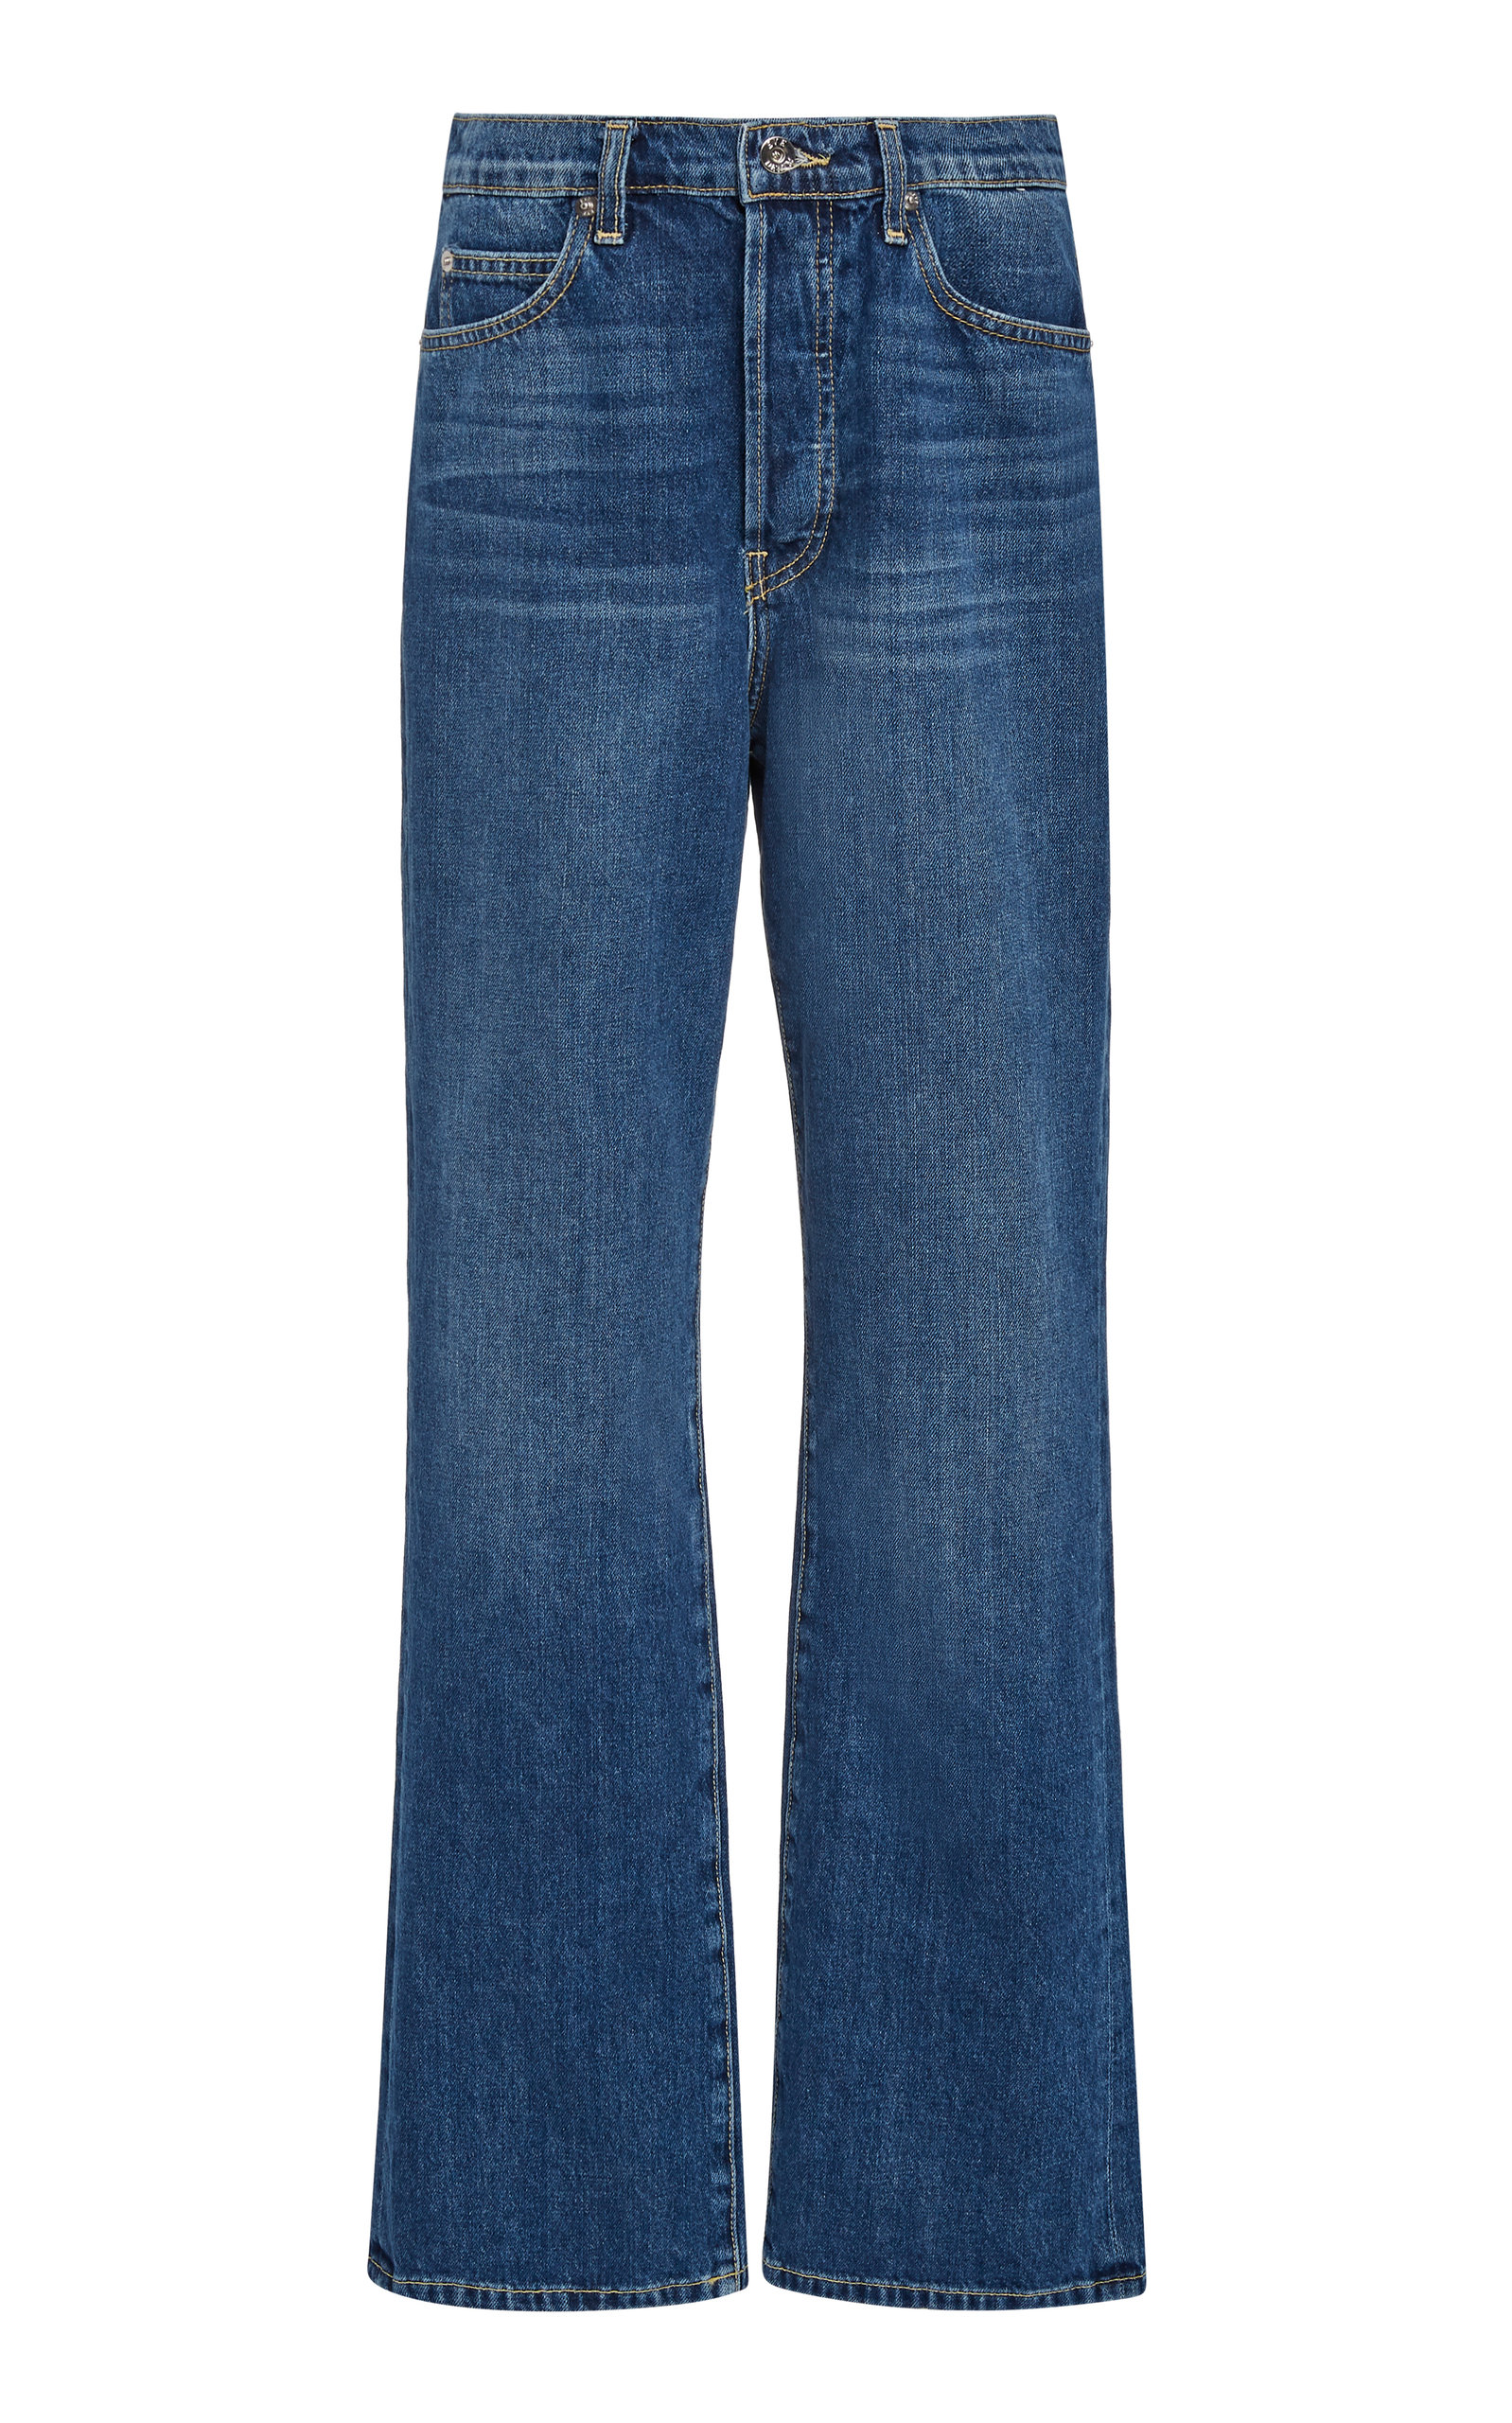 Eve Denim JULIETTE RIGID MID-RISE WIDE-LEG JEANS